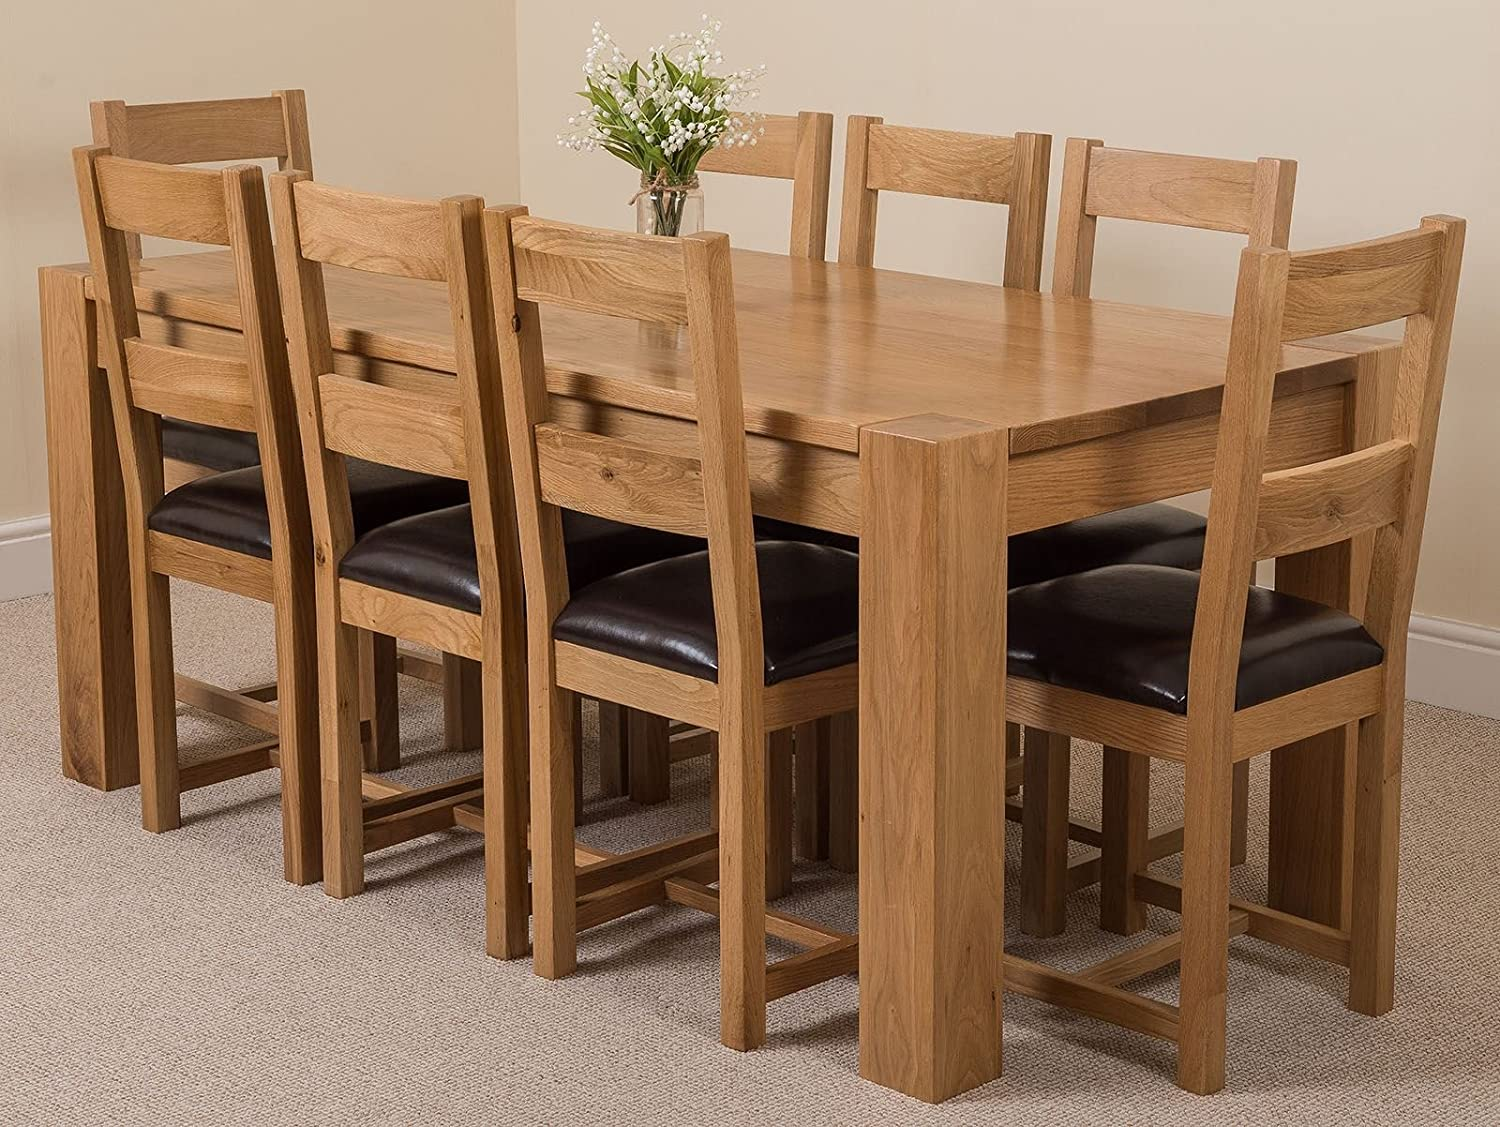 Oak Furniture King Kuba 180 X 90cm Chunky Oak Dining Table With 8 Chairs Dining Set Lincoln Chairs Amazon Co Uk Kitchen Home